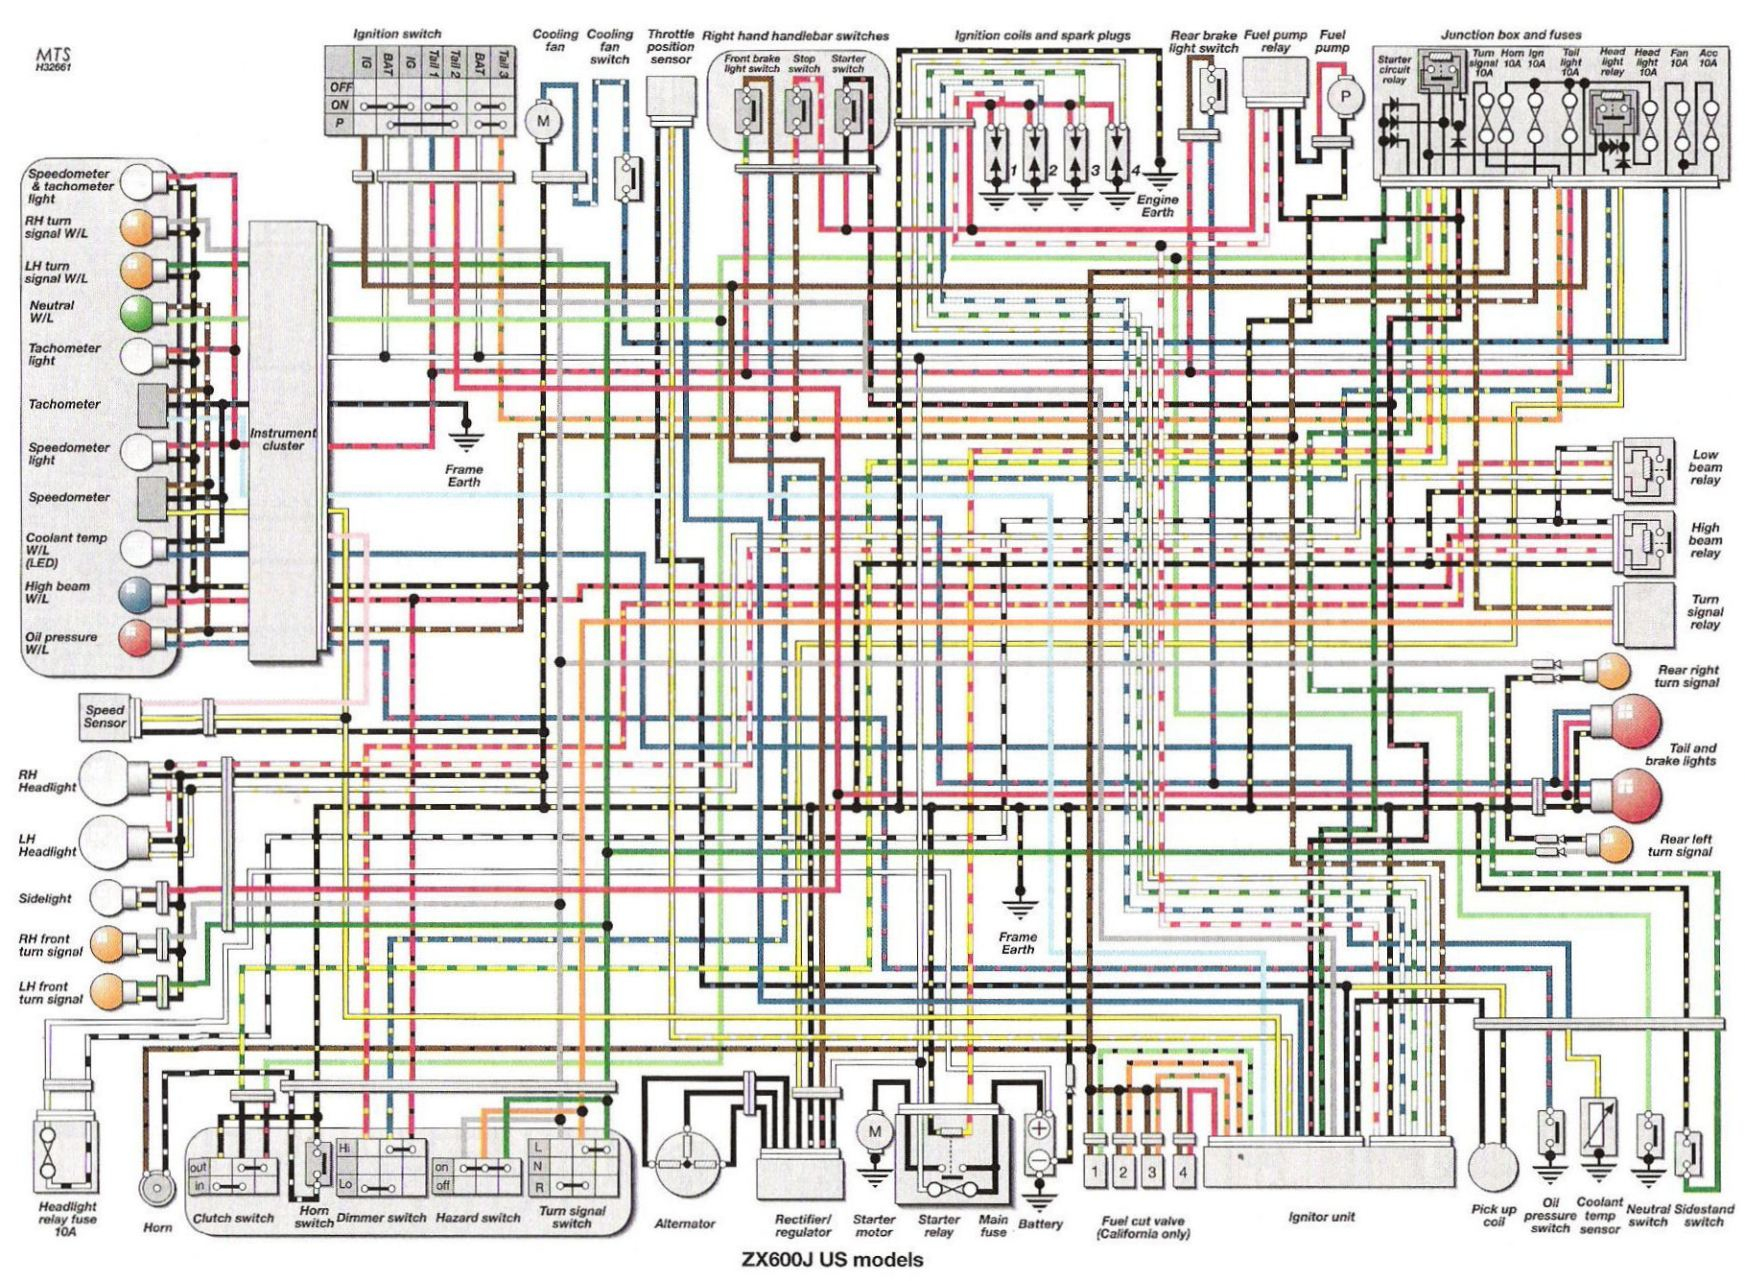 2006 gsxr 1000 wiring diagram 2006 image wiring 05 gsxr 600 wiring diagram 05 auto wiring diagram database on 2006 gsxr 1000 wiring diagram